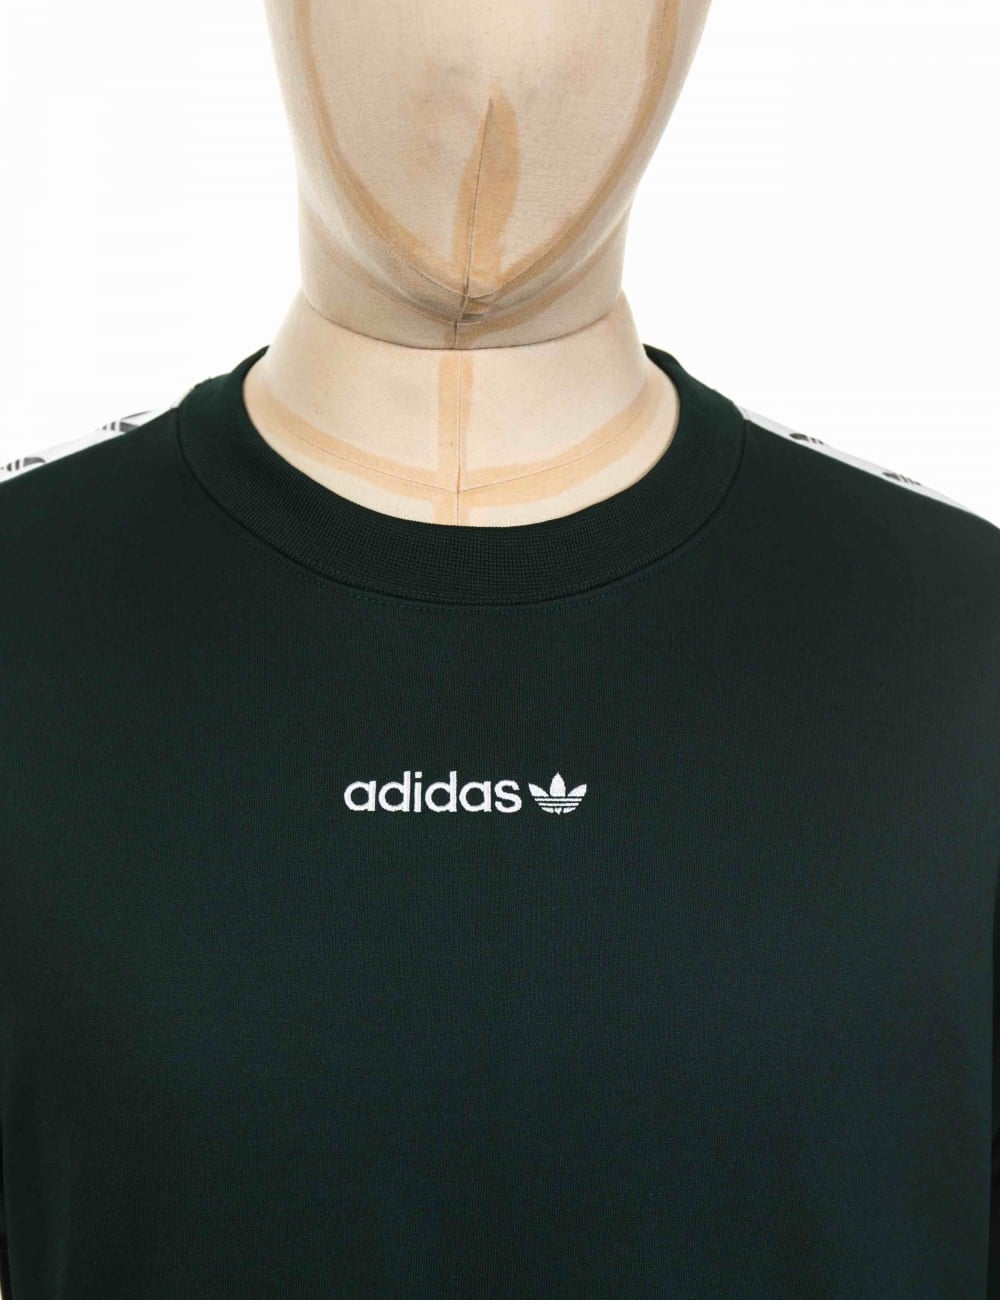 clase cajón músico  Adidas Originals TNT Tape Crew Sweatshirt - Night Green/White - Clothing  from Fat Buddha Store UK